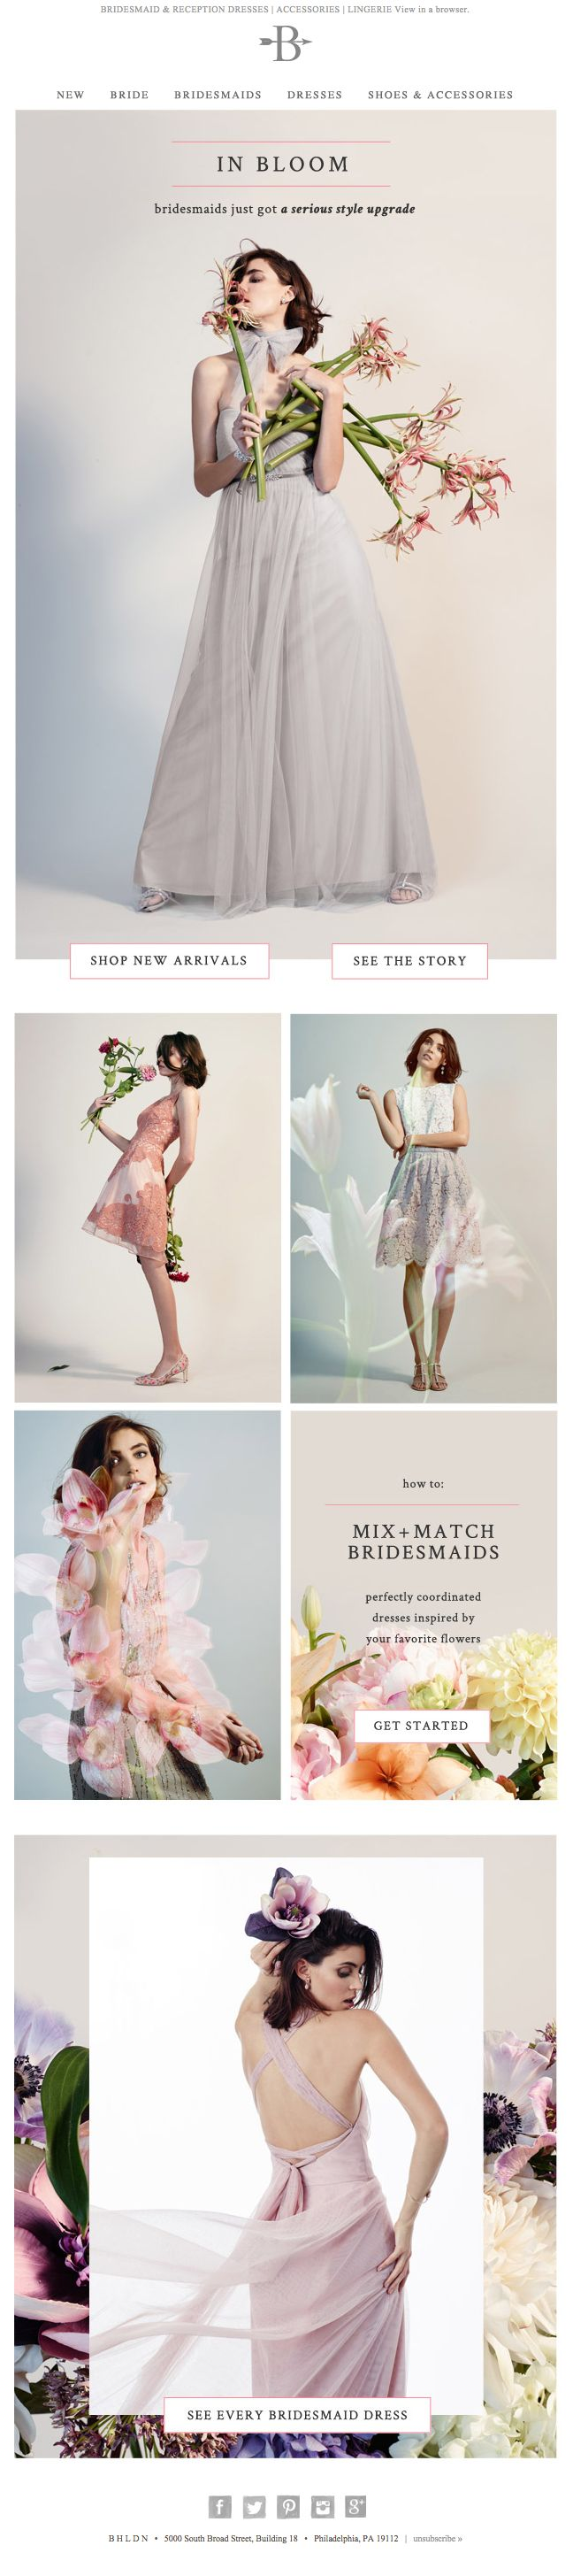 B H L D N - 50+ NEW ARRIVALS & MIXED MAIDS #Express #streetstyle…